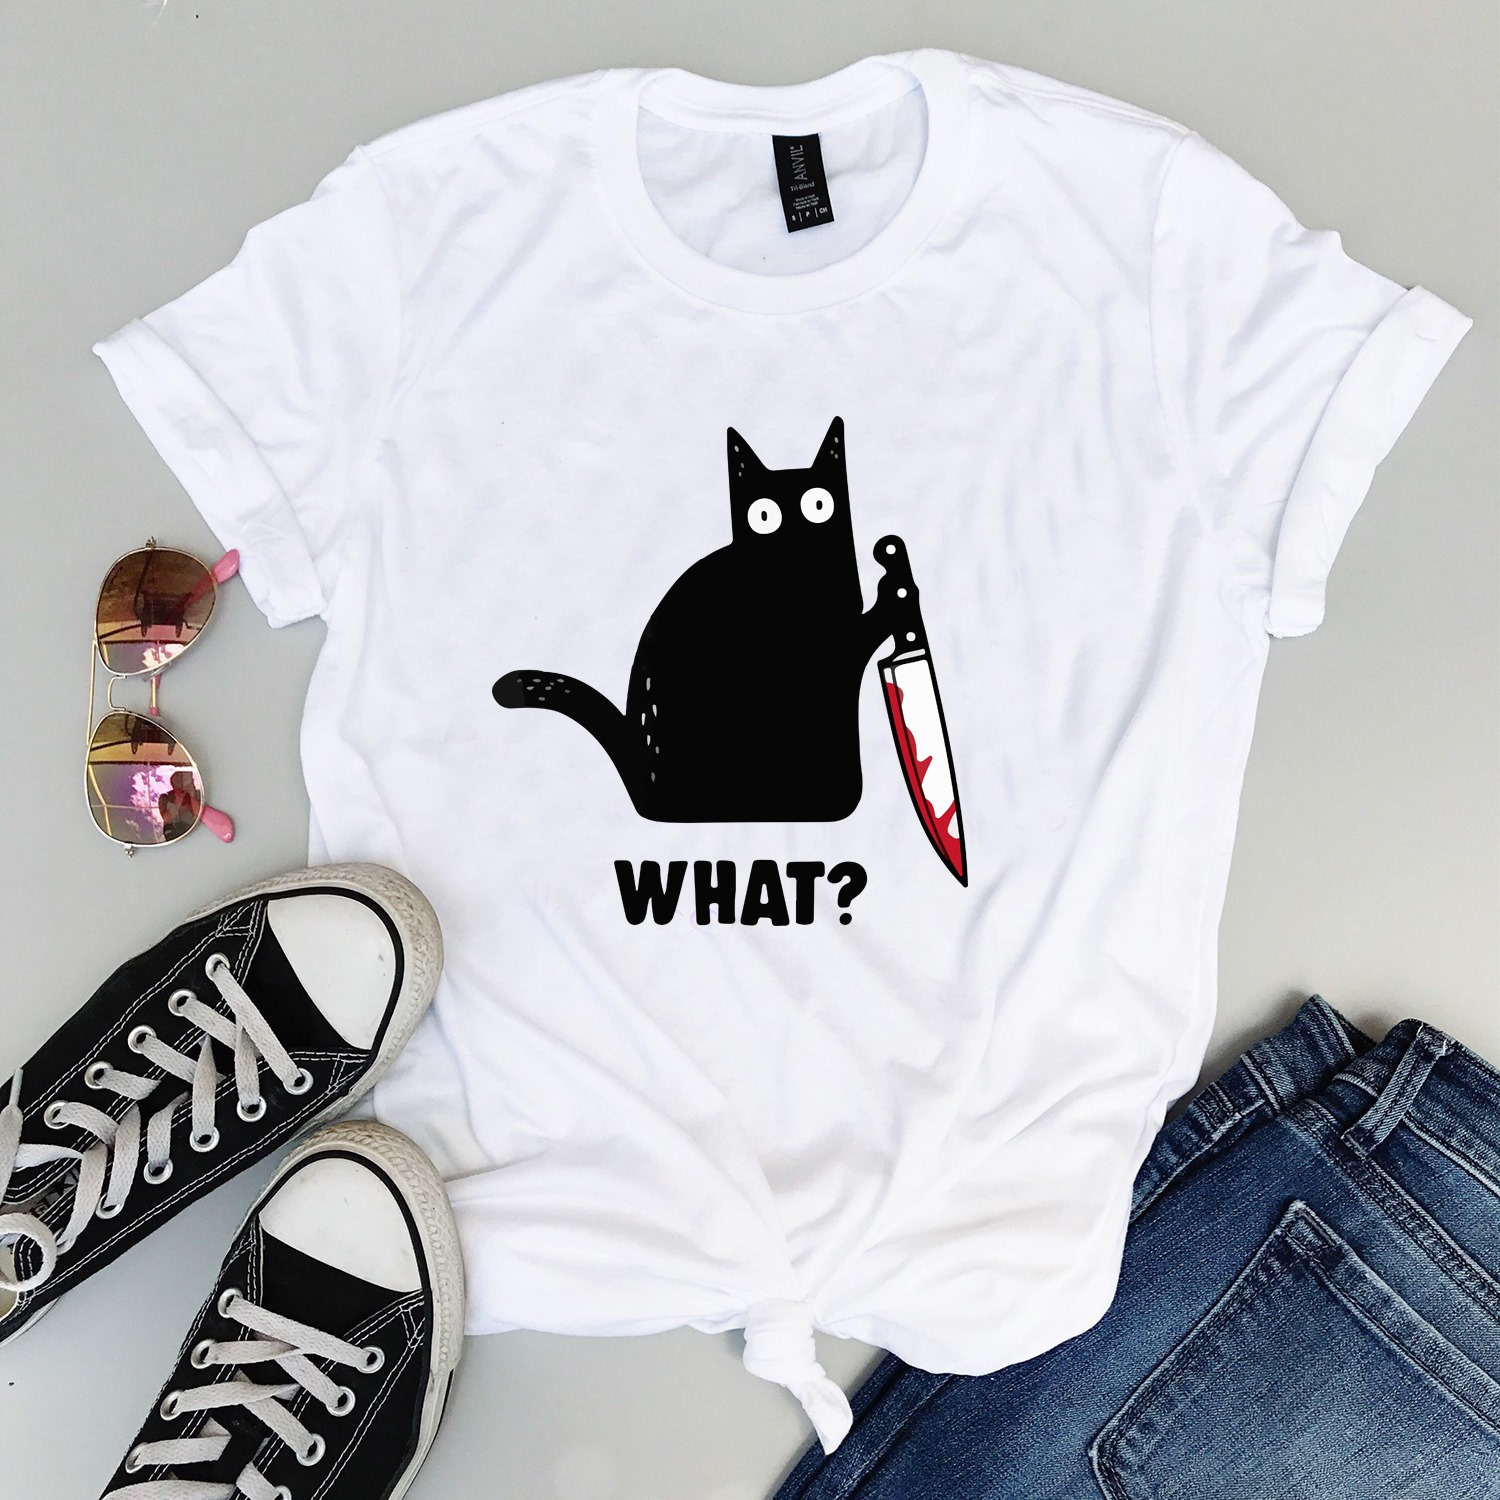 Bad cat with knife Men T-Shirt